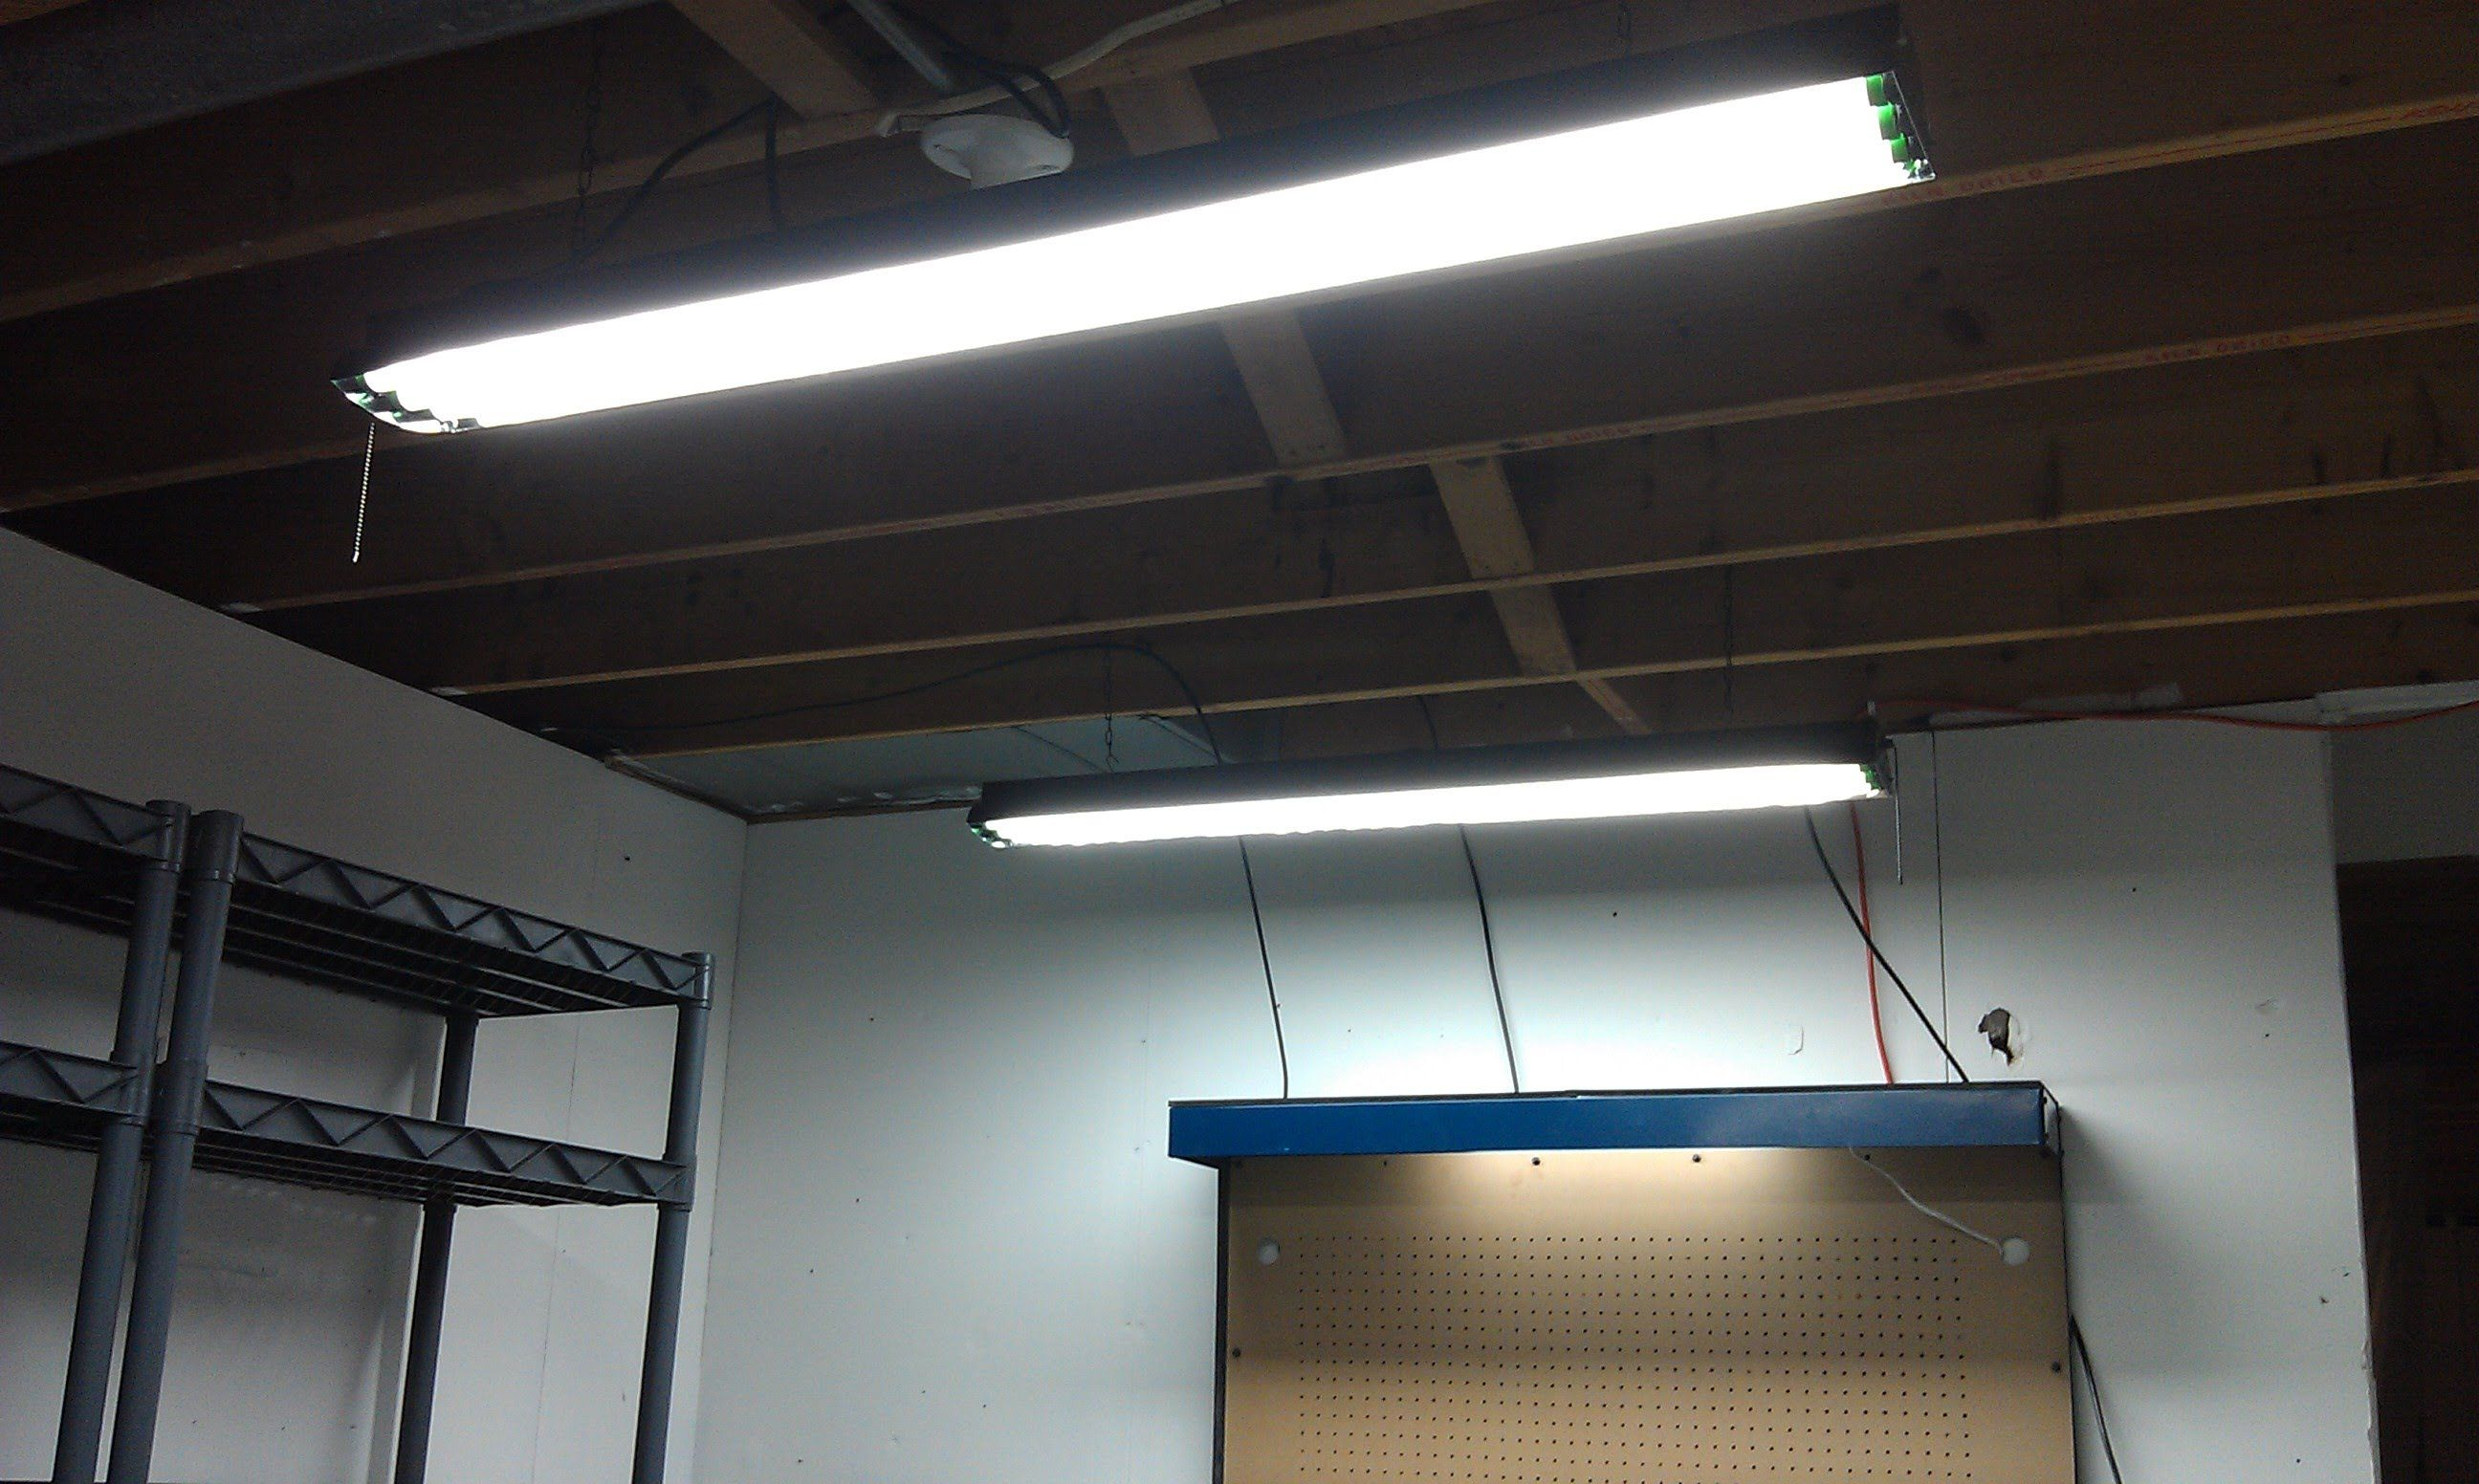 Choosing Garage Lighting Ideas Whether Interior Or Exterior Can Be Tricky In A Garage We Ll Give You Ideas And Tips For Finding The Right Fixtures For Your S